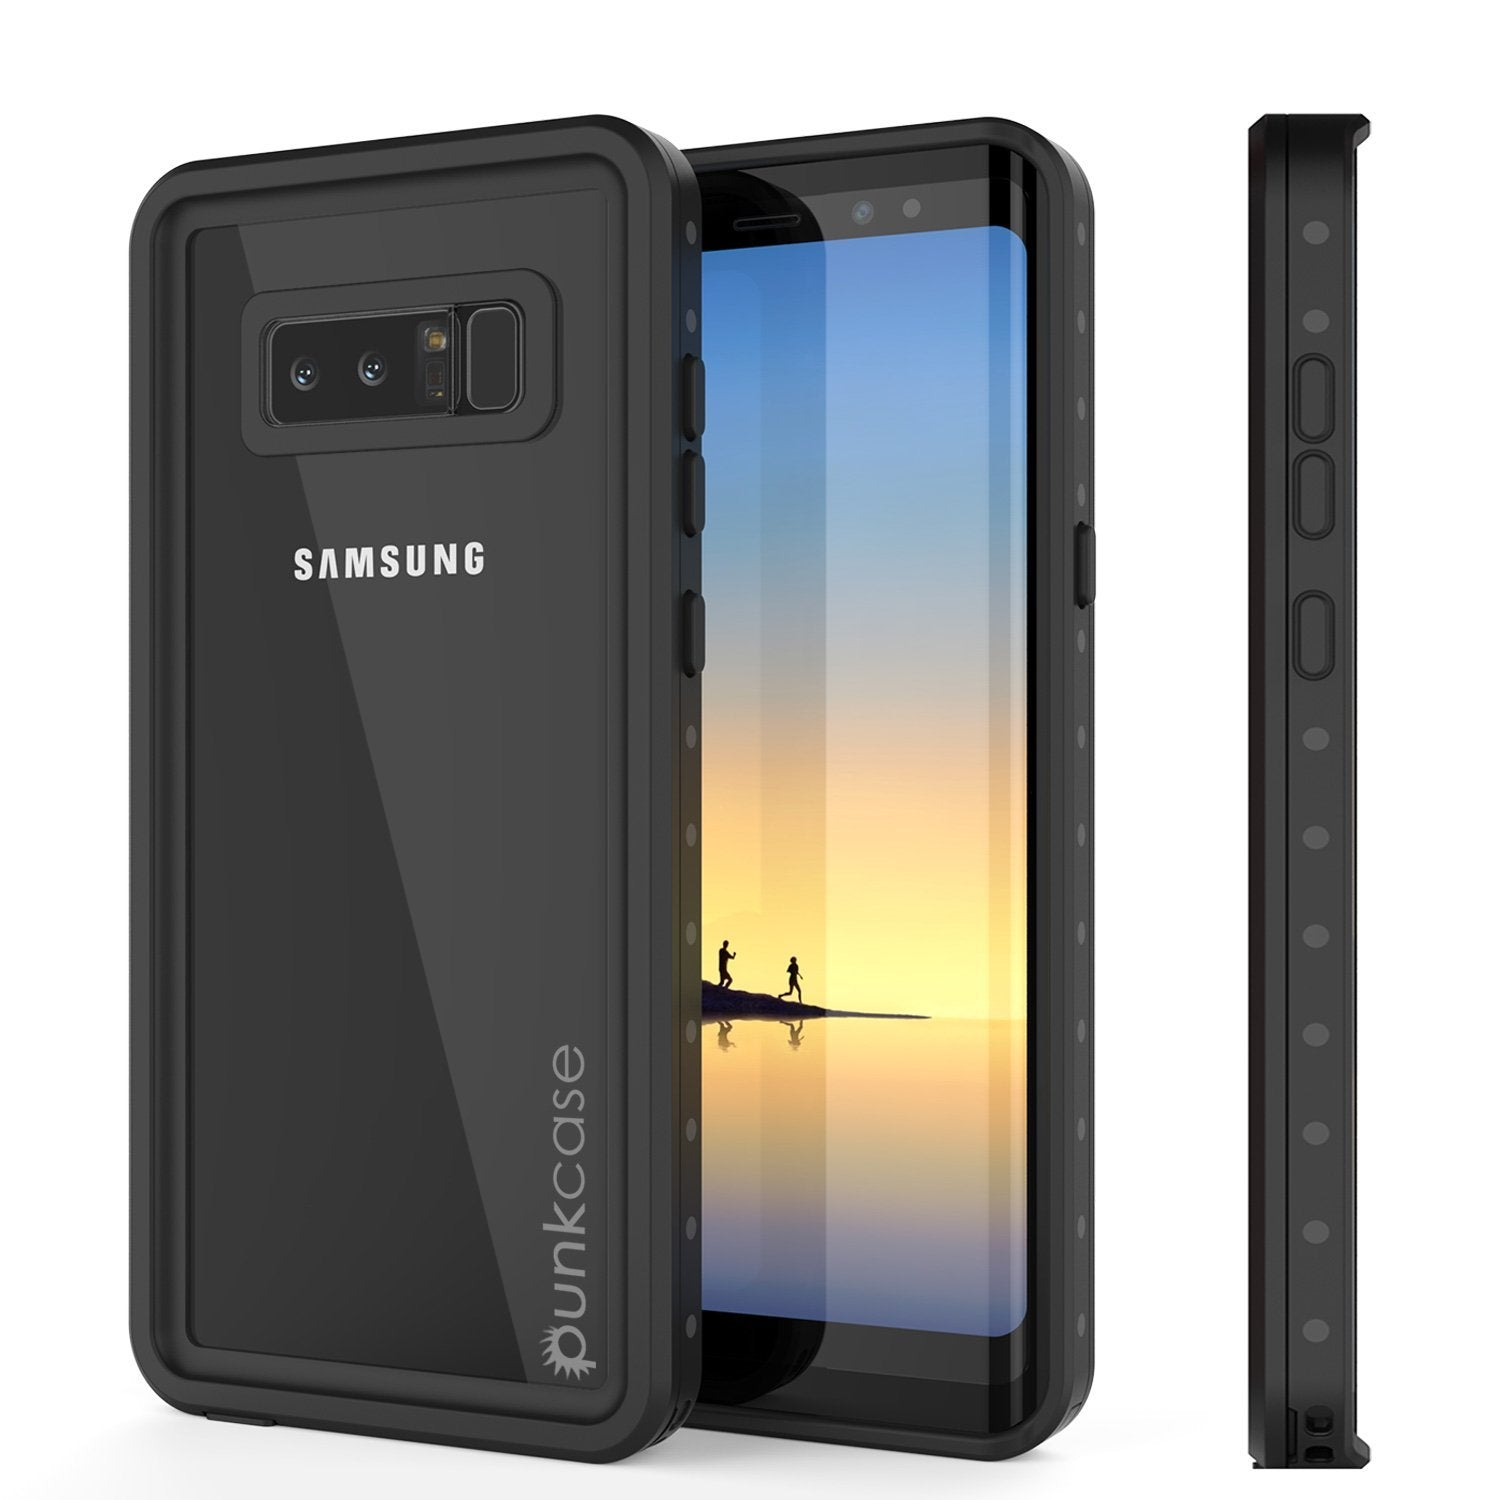 Galaxy Note 8 Waterproof Case, Punkcase [StudStar] [Slim Fit] [IP68 Certified] [Shock/Snow proof] Armor Cover [Clear]